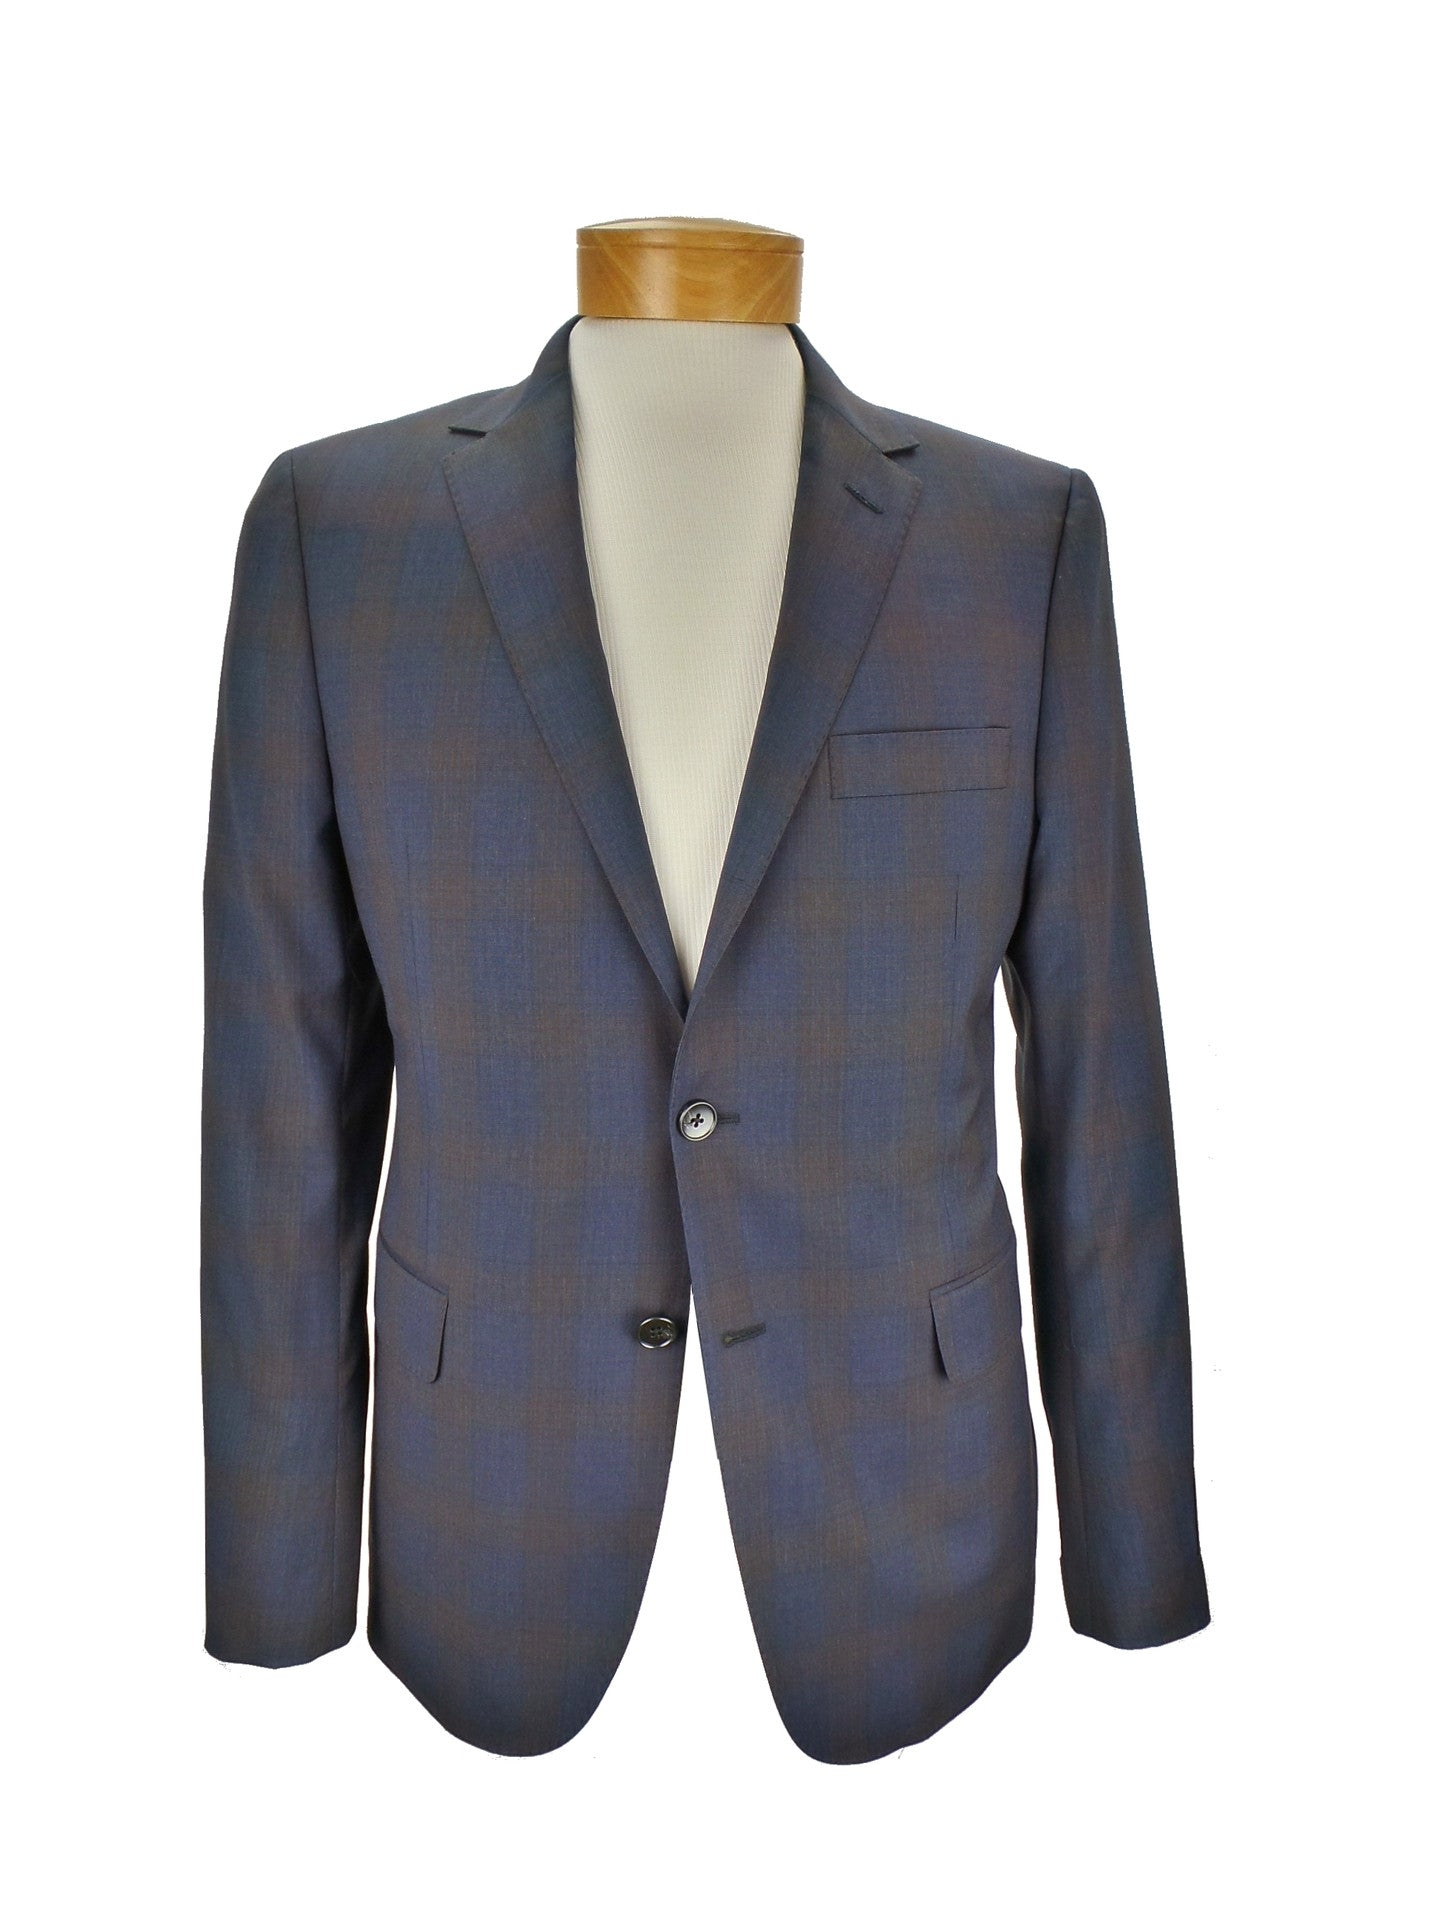 Hickey Freeman h. Amer. Tailor Made in US Perry SB Soft Check Blazer